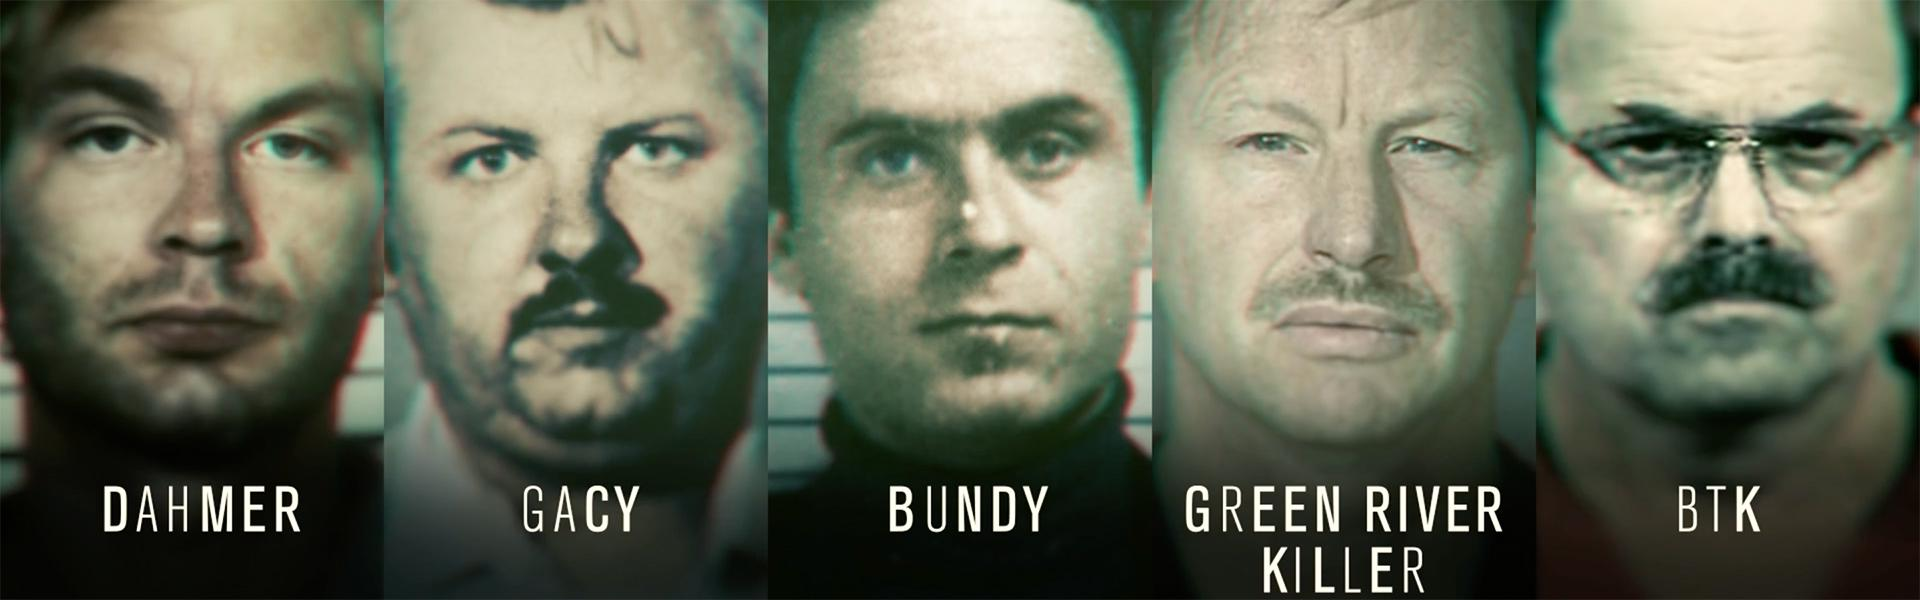 A&E Delves Into Serial Killers' Backgrounds in 'Invisible Monsters'  Promax  Brief